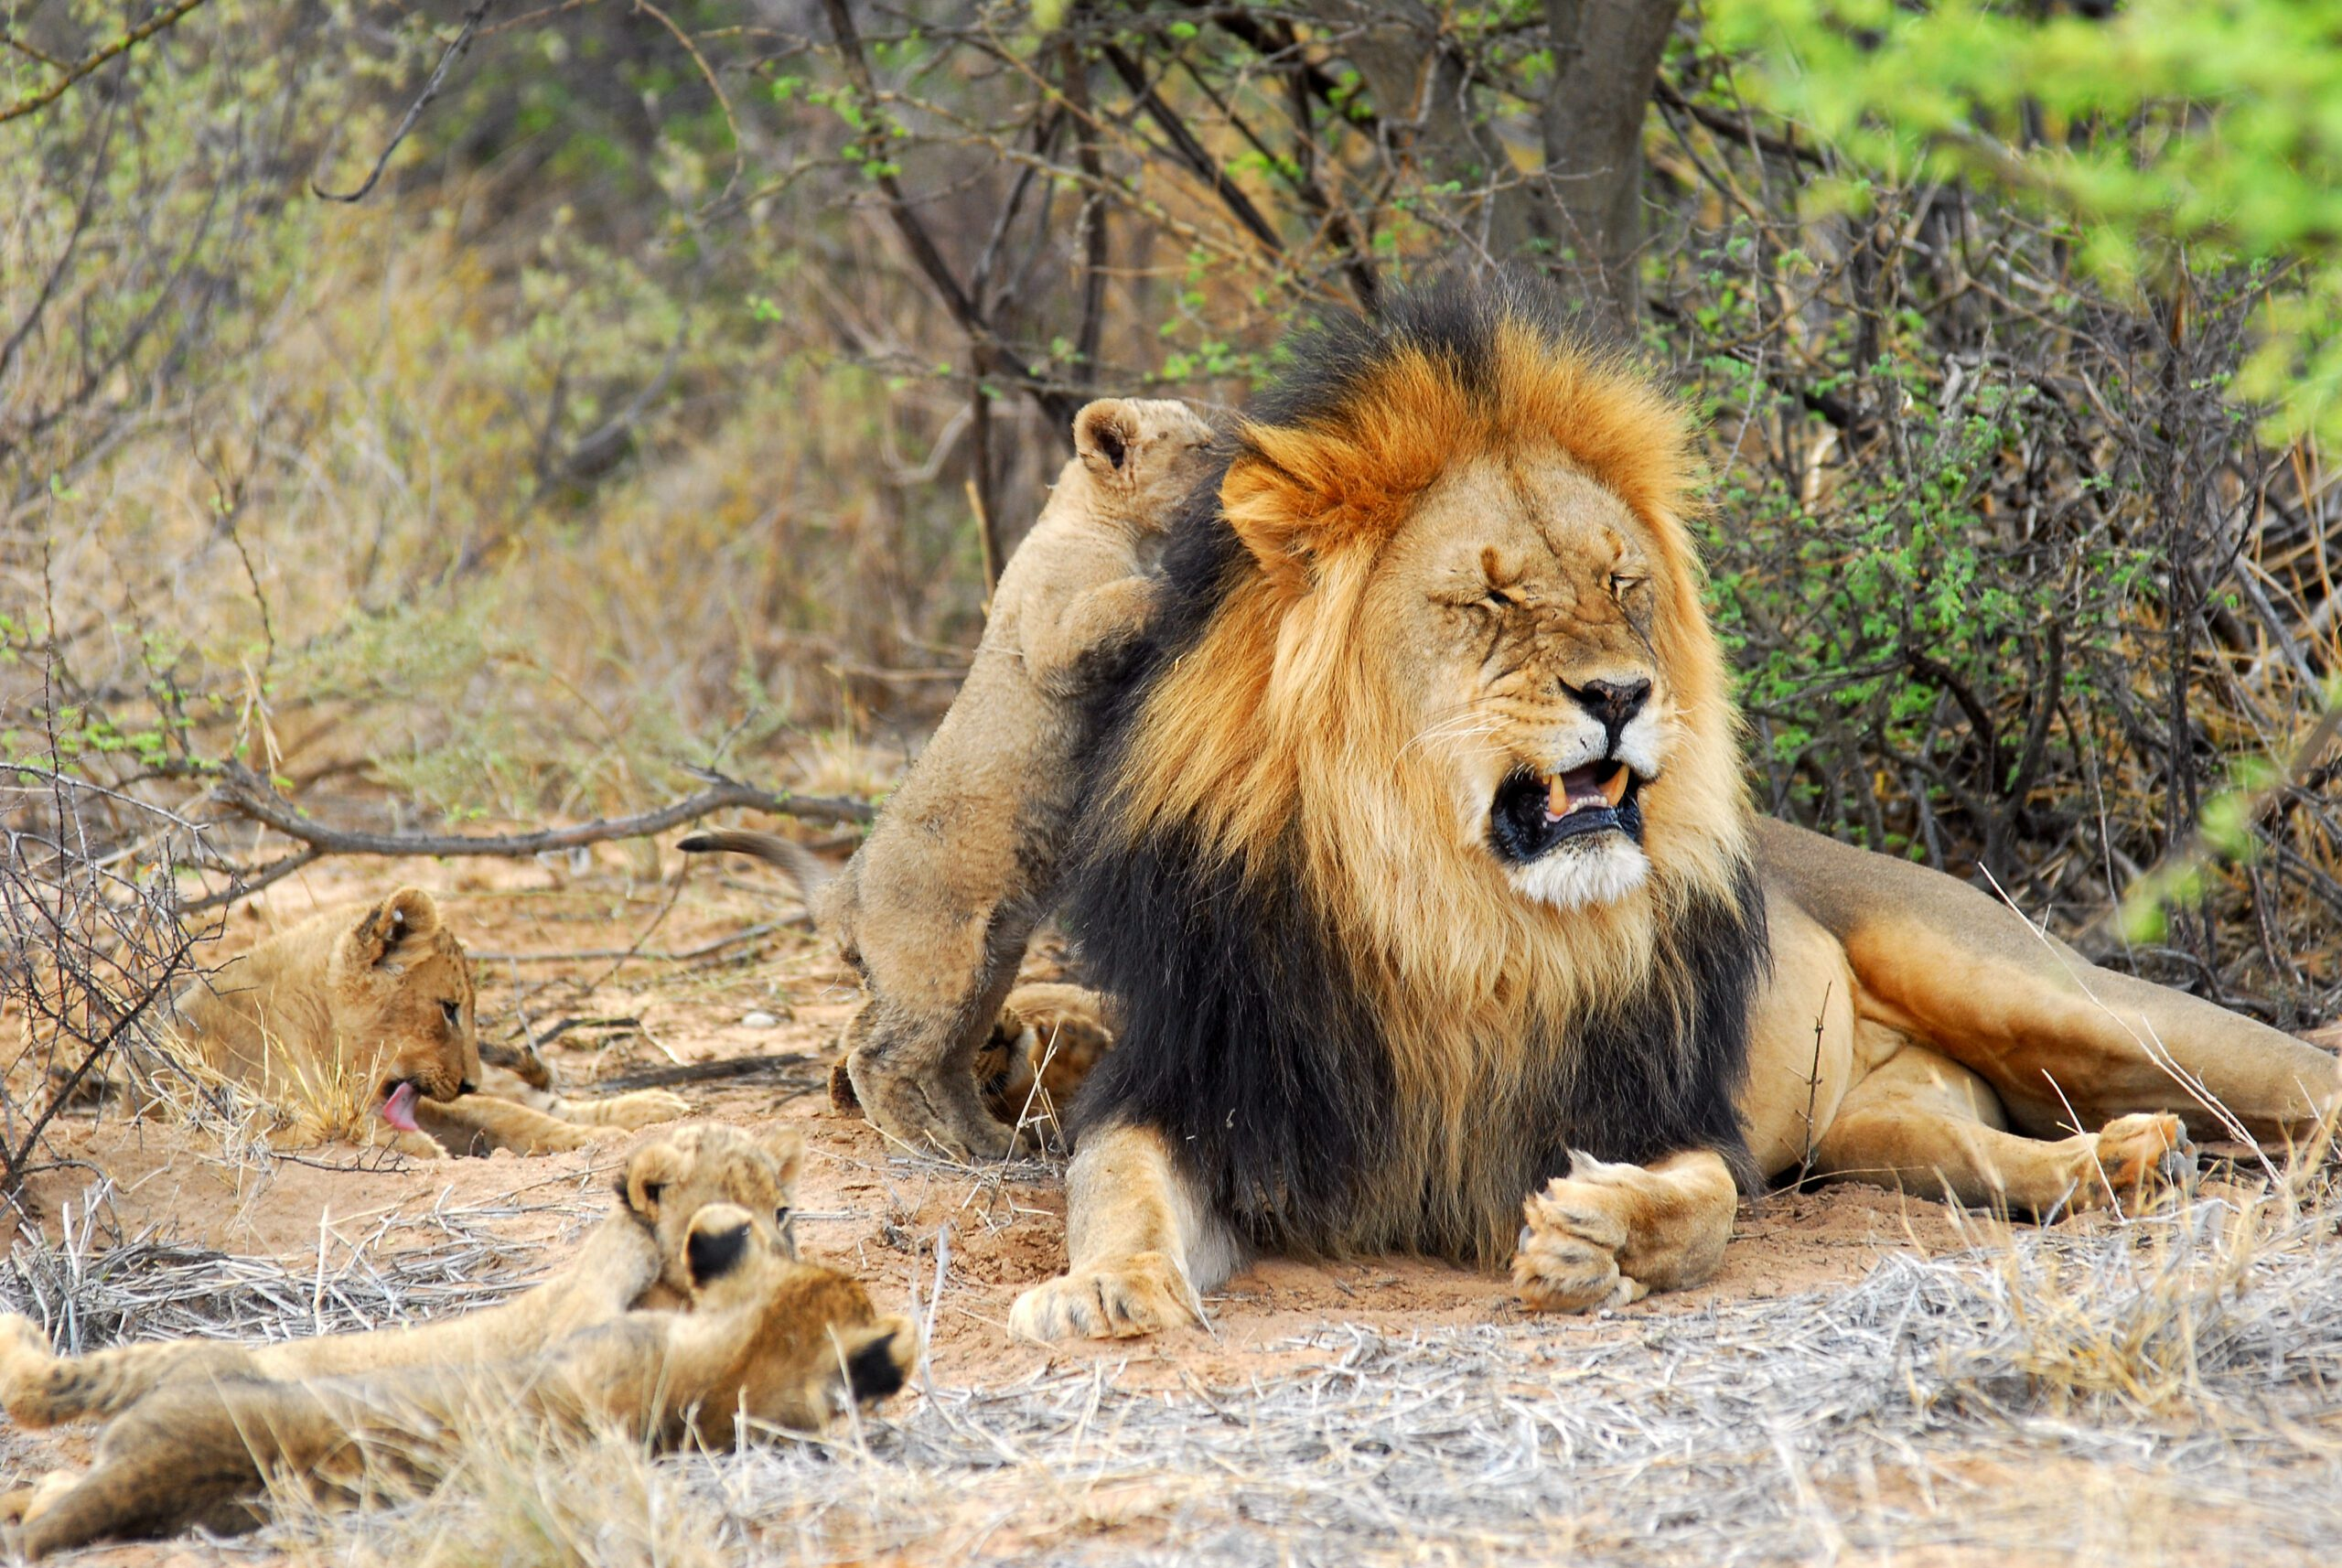 black maned lion with three adorable cubs playing around him under a shaded tree in southern kalahari